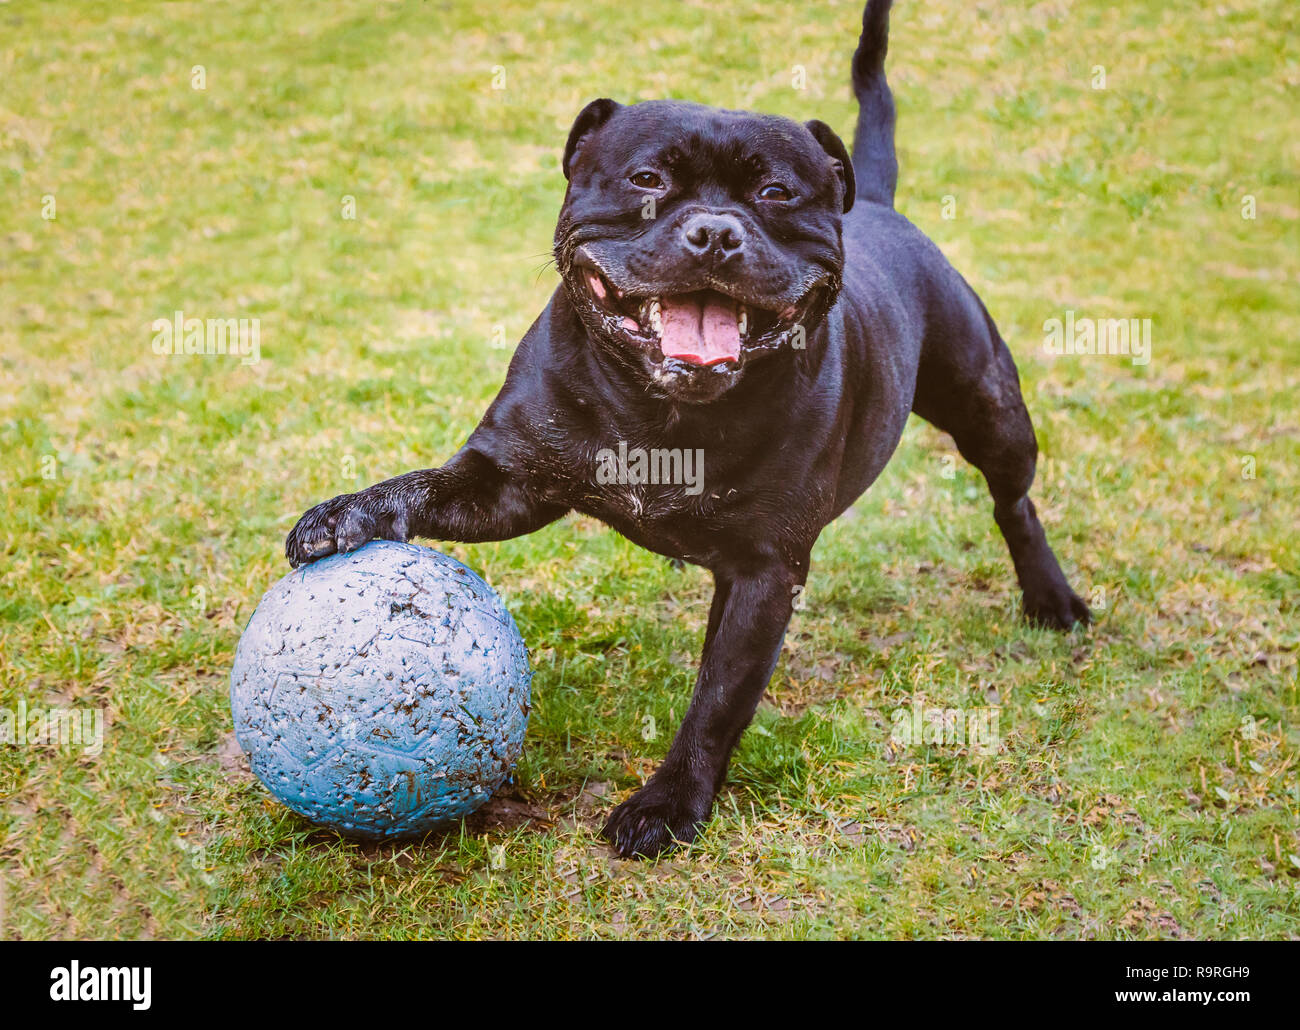 Happy Staffordshire Bull Terrier dog standing with his paw resting on a large ball ball with puncher marks from playing. He is smiling and looks very  - Stock Image